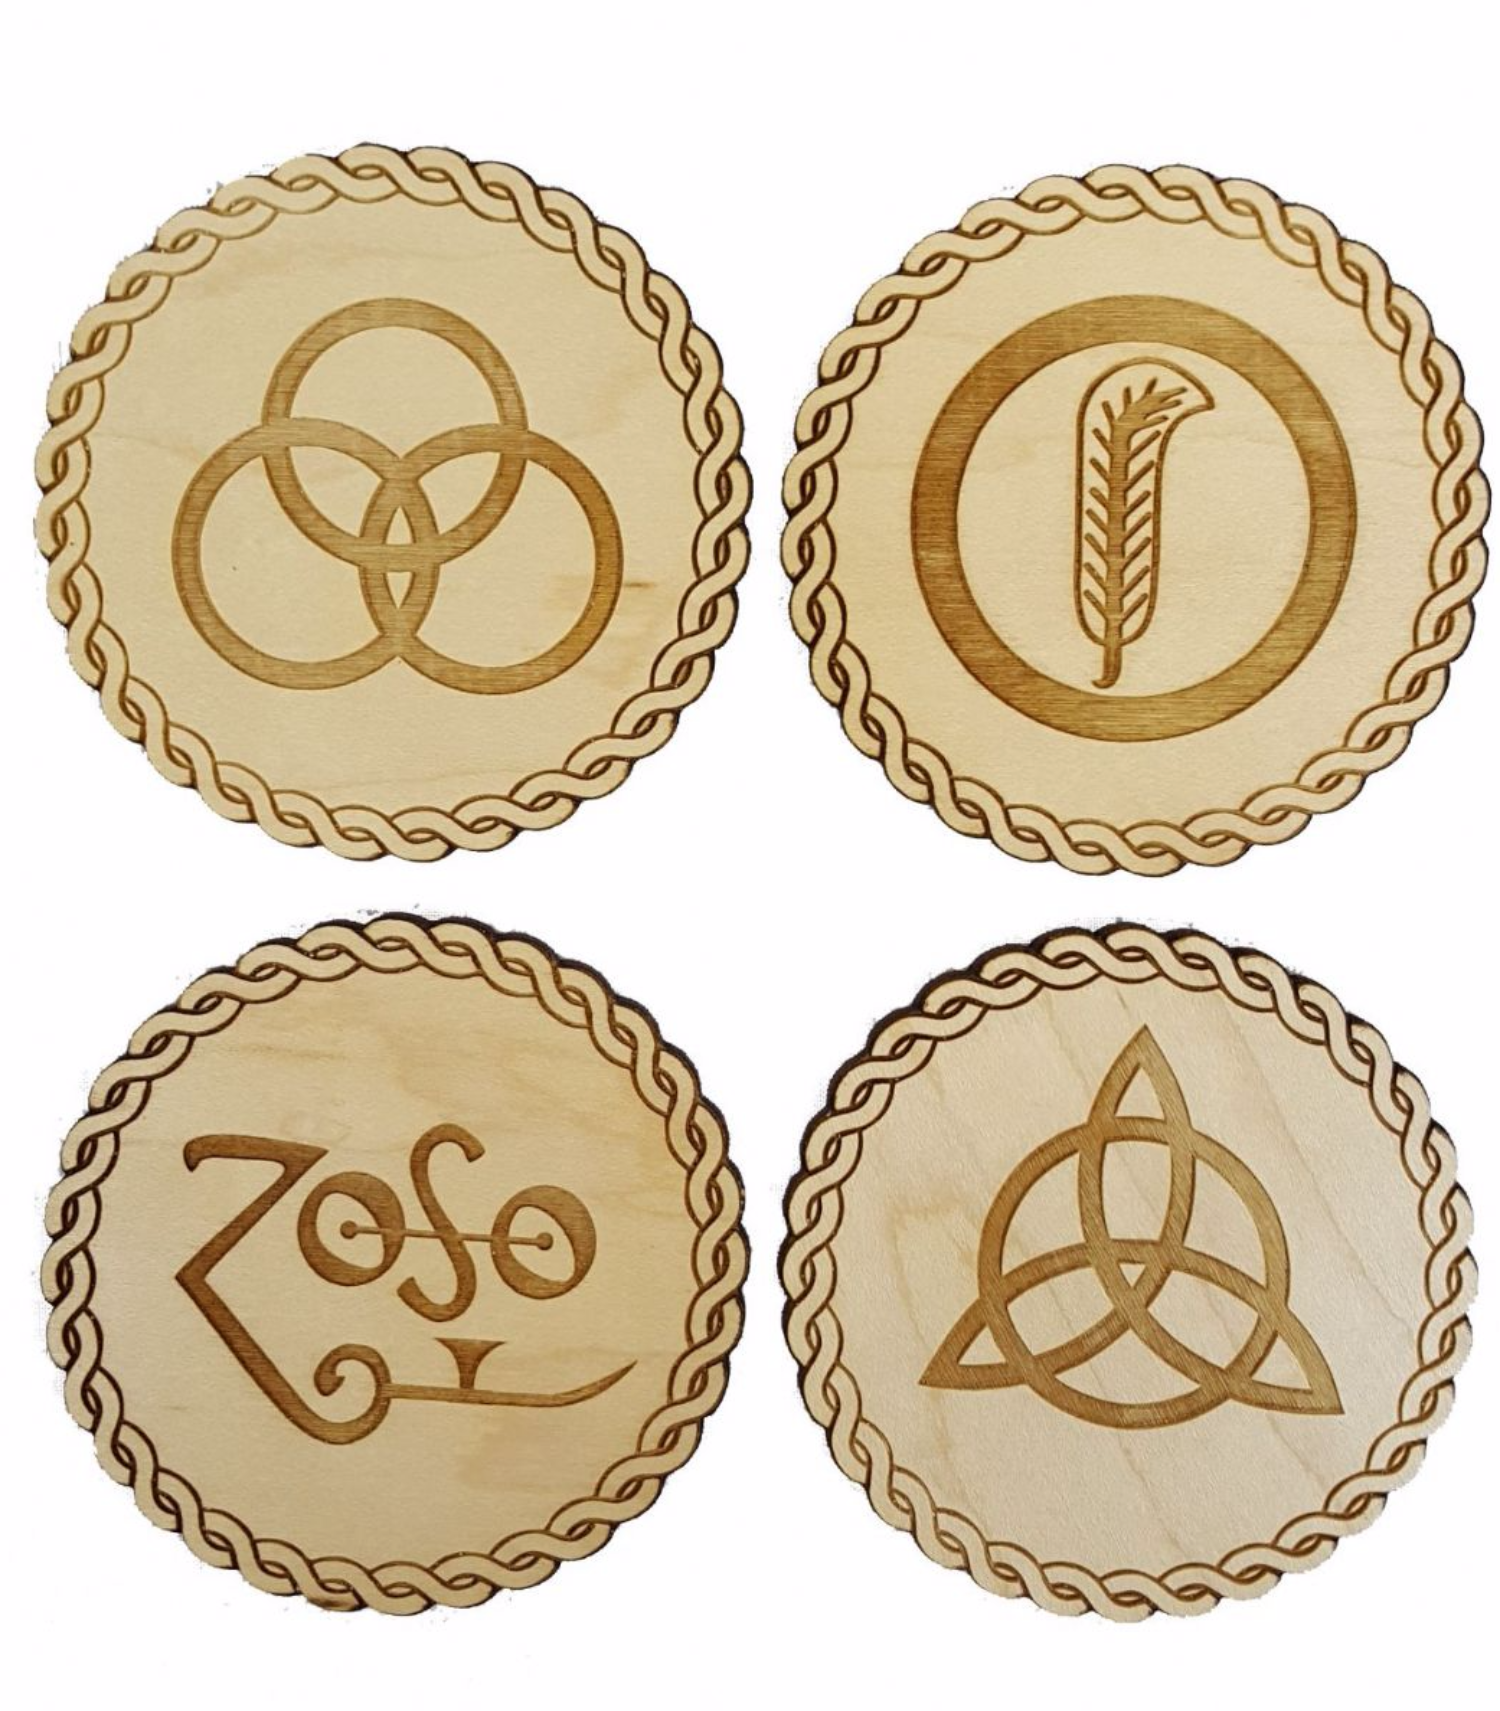 Led Zeppelin Inspired Wooden Zoso Symbol Coasters Pack Of 4 Choice